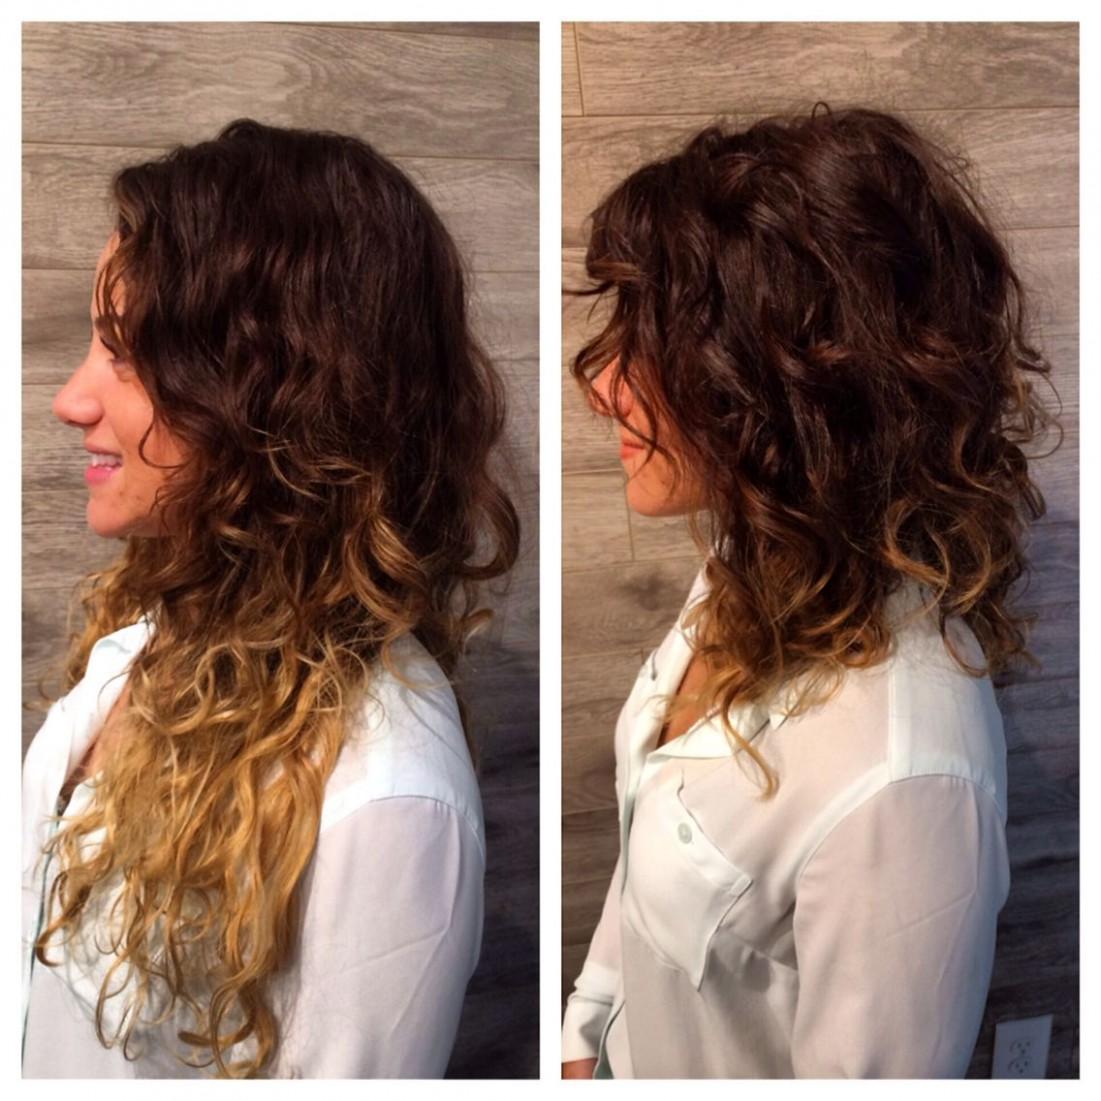 Saying Goodbye To Summer Ends #Lob #Curly #FallHair Short Curly Lob Haircut For Curly Hair